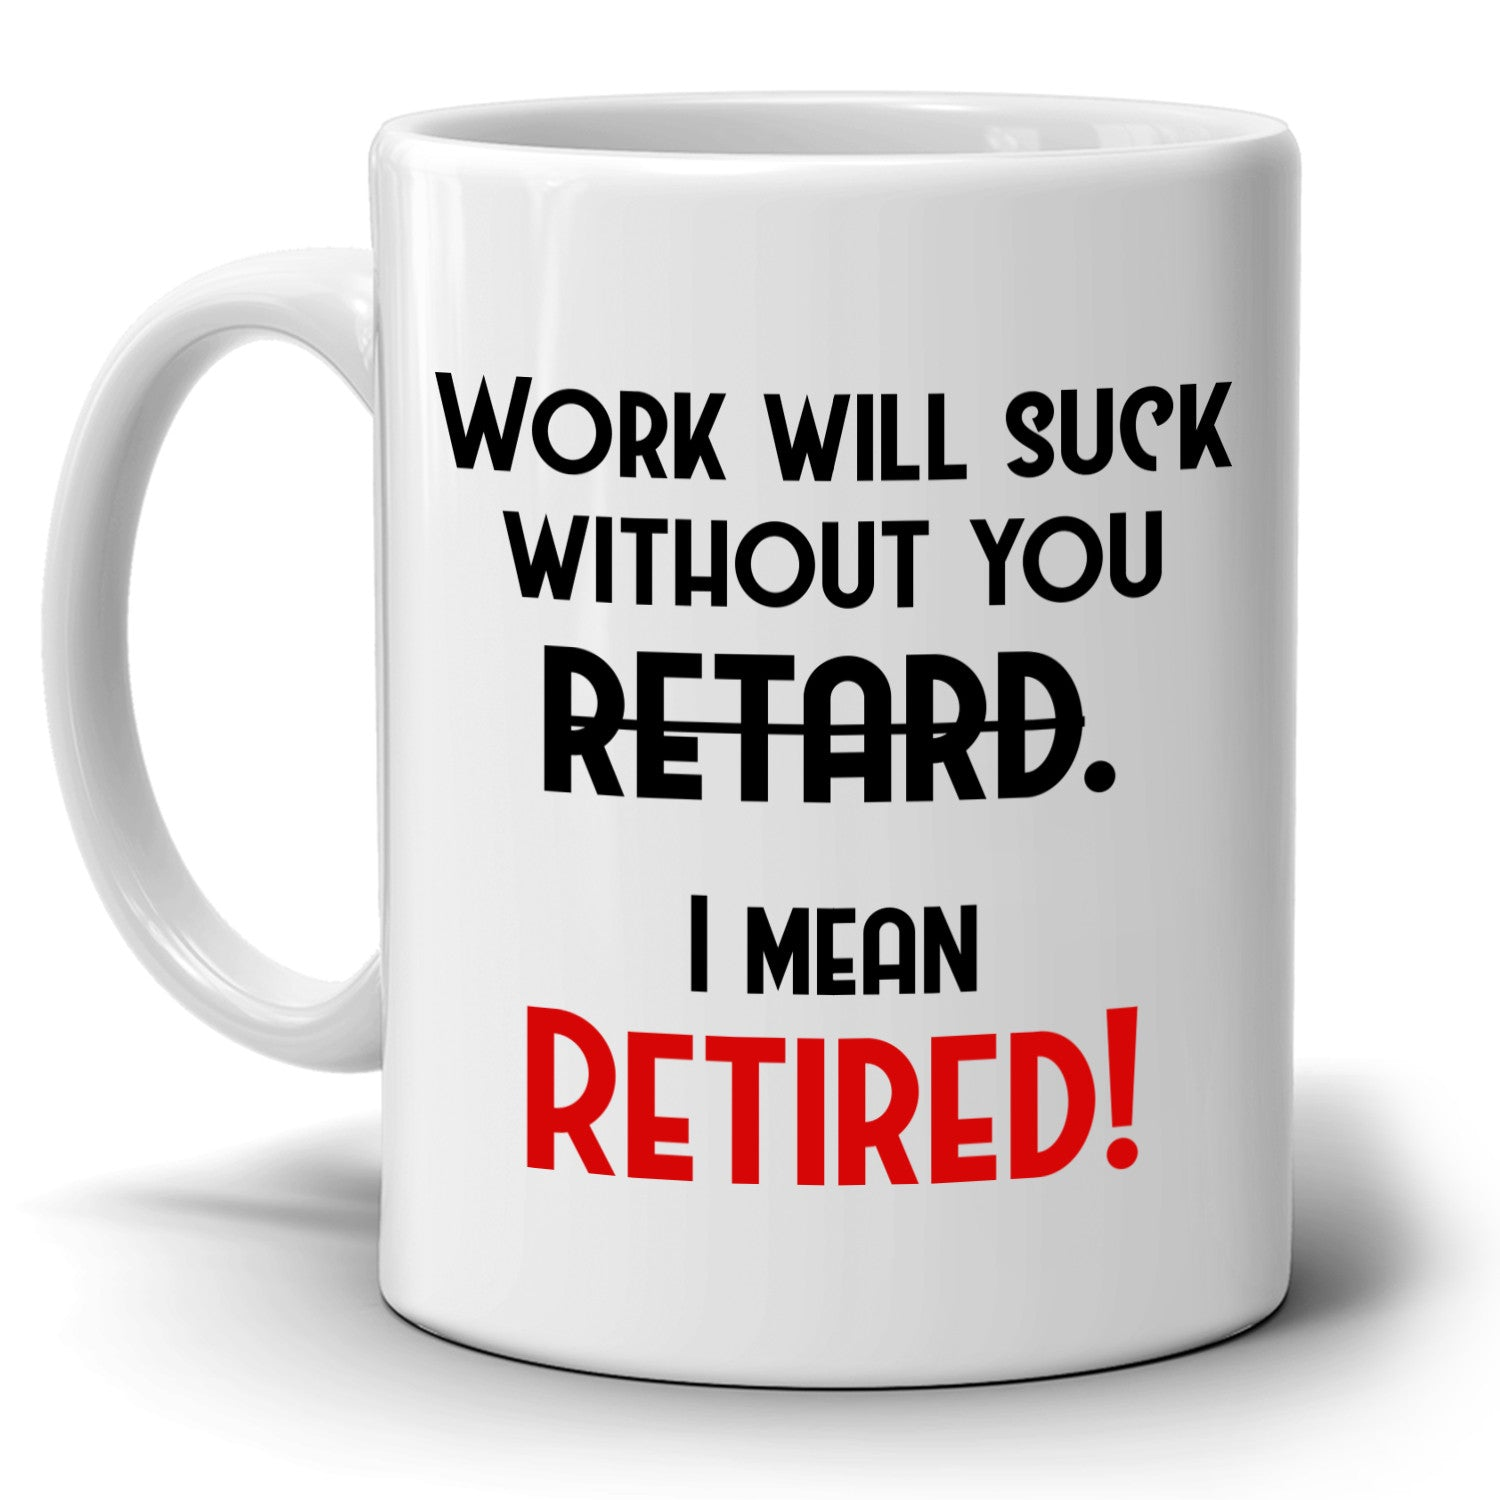 Funny Retirement Gag Gifts for Boss Coworkers Man and Women, Best Humor Coffee Mug,